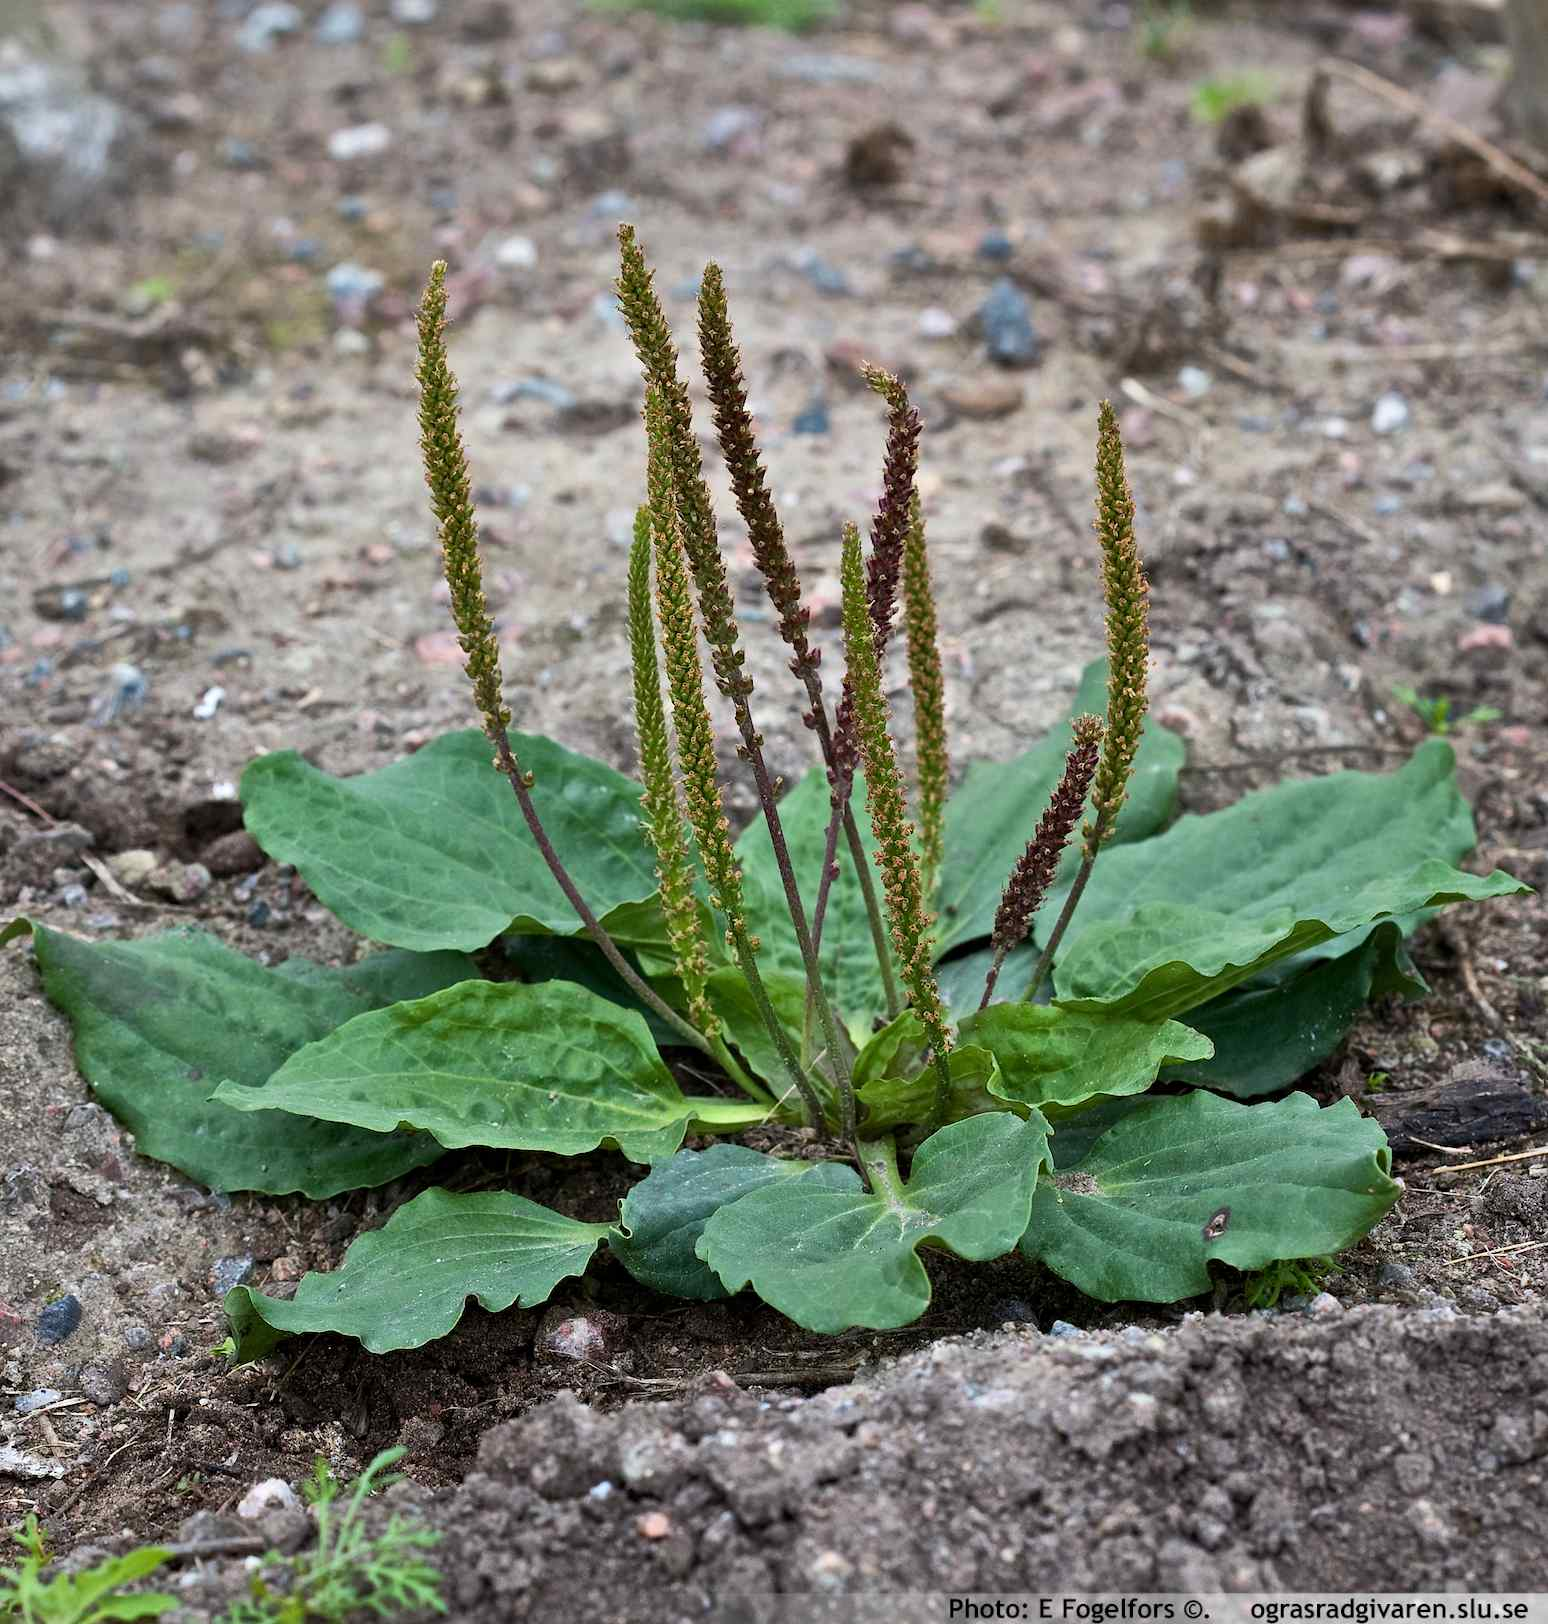 Broadleaf Plantain (Plantago Major)